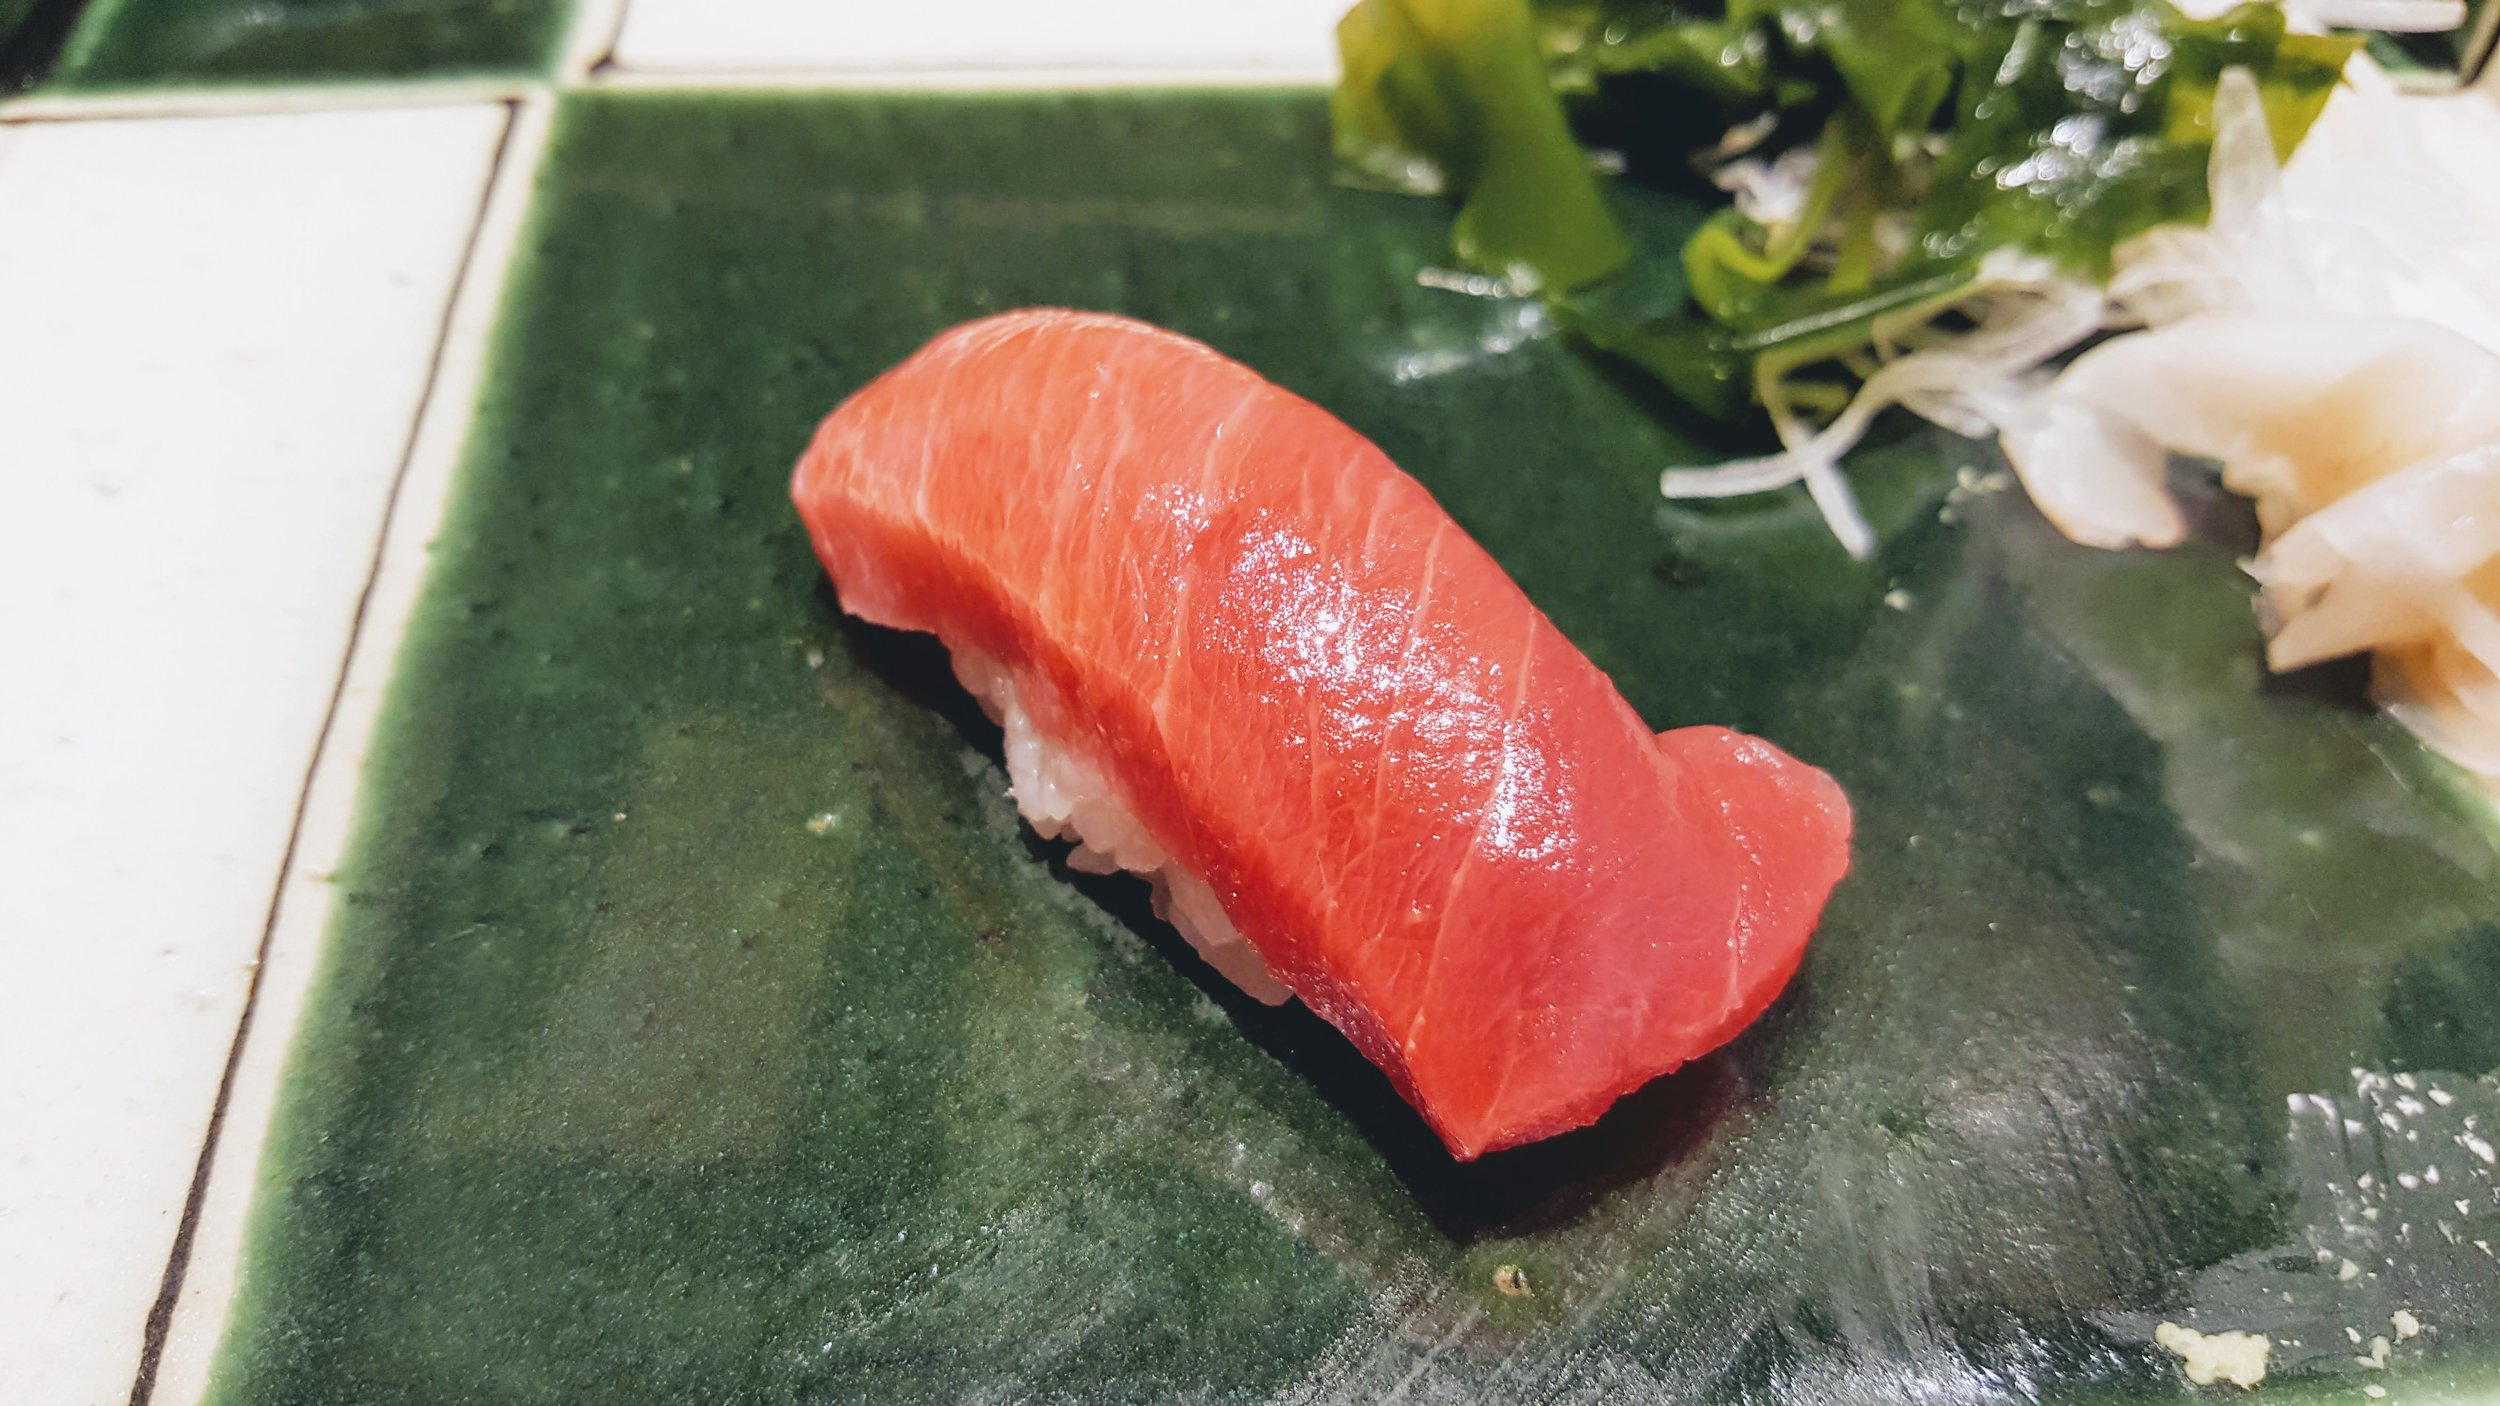 Why hello gorgeous tuna, you are so pretty that I just want to stare at you all day long!